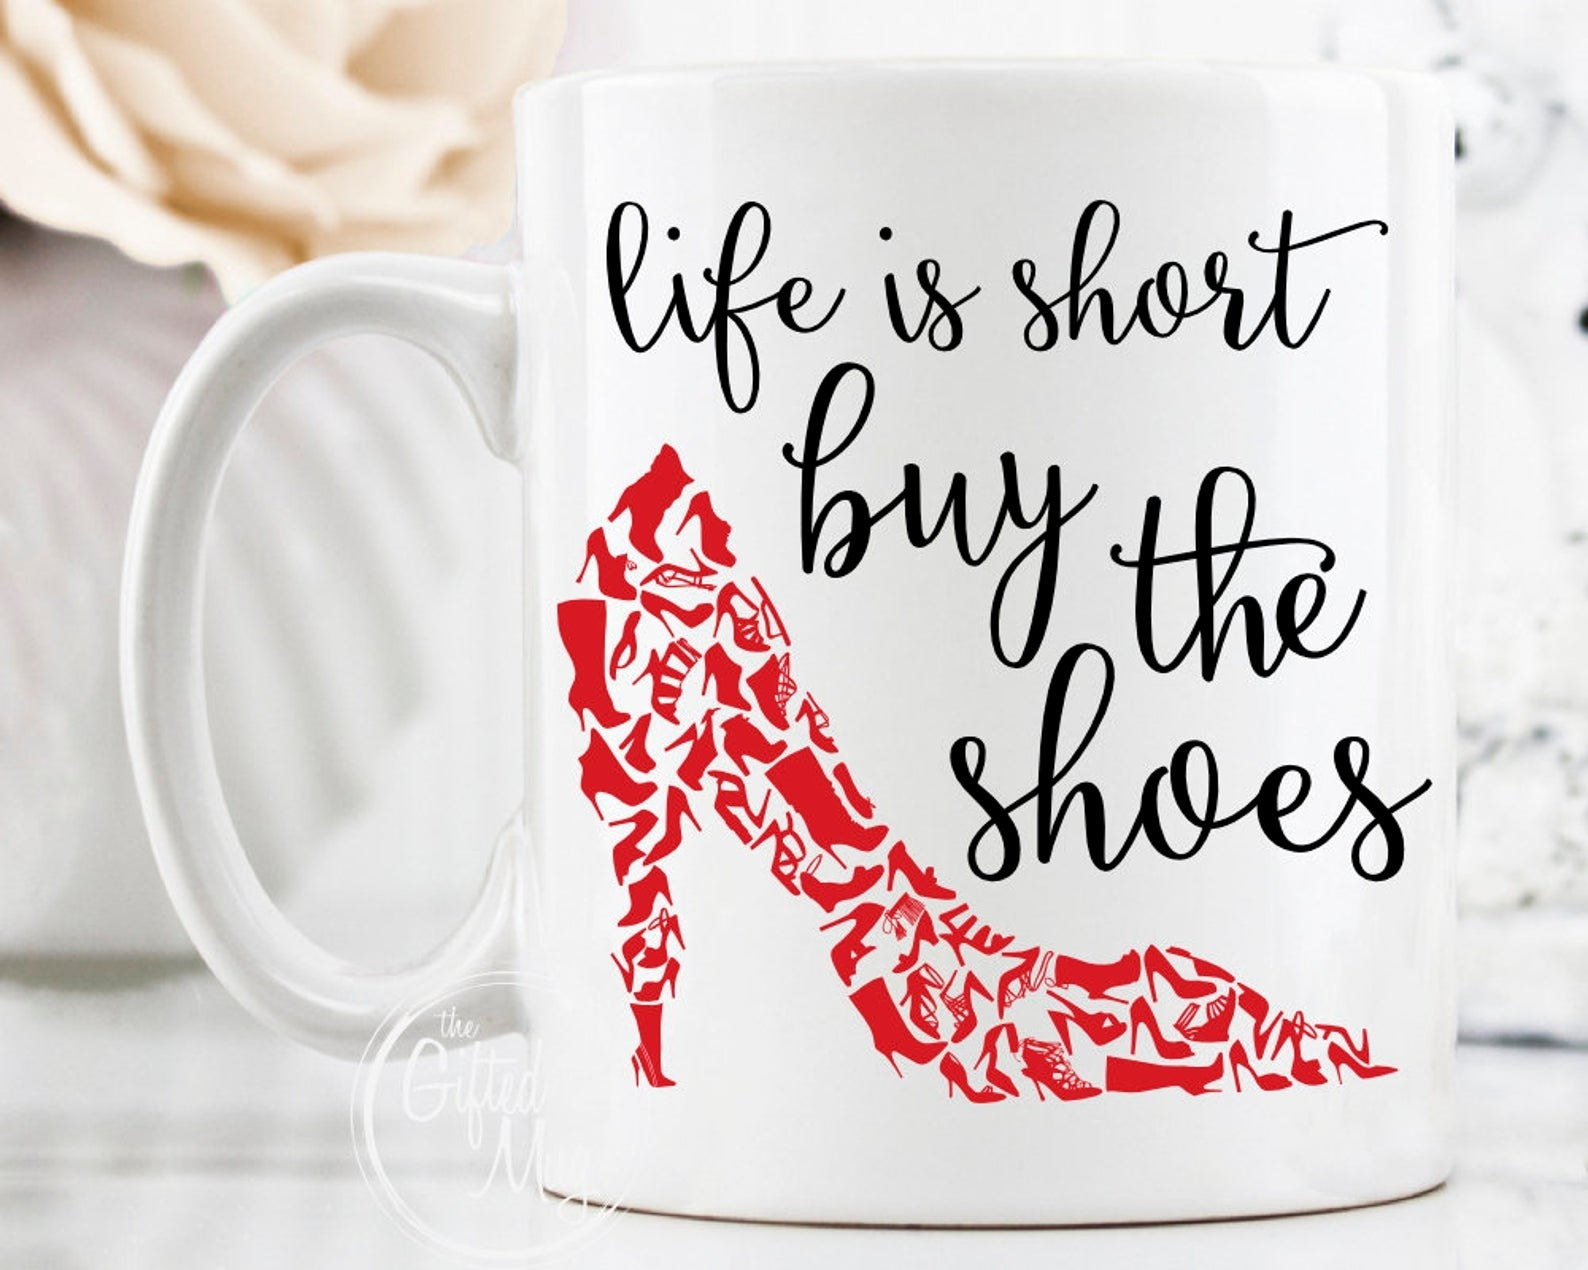 white coffee mug with a red shoe design on it and black text